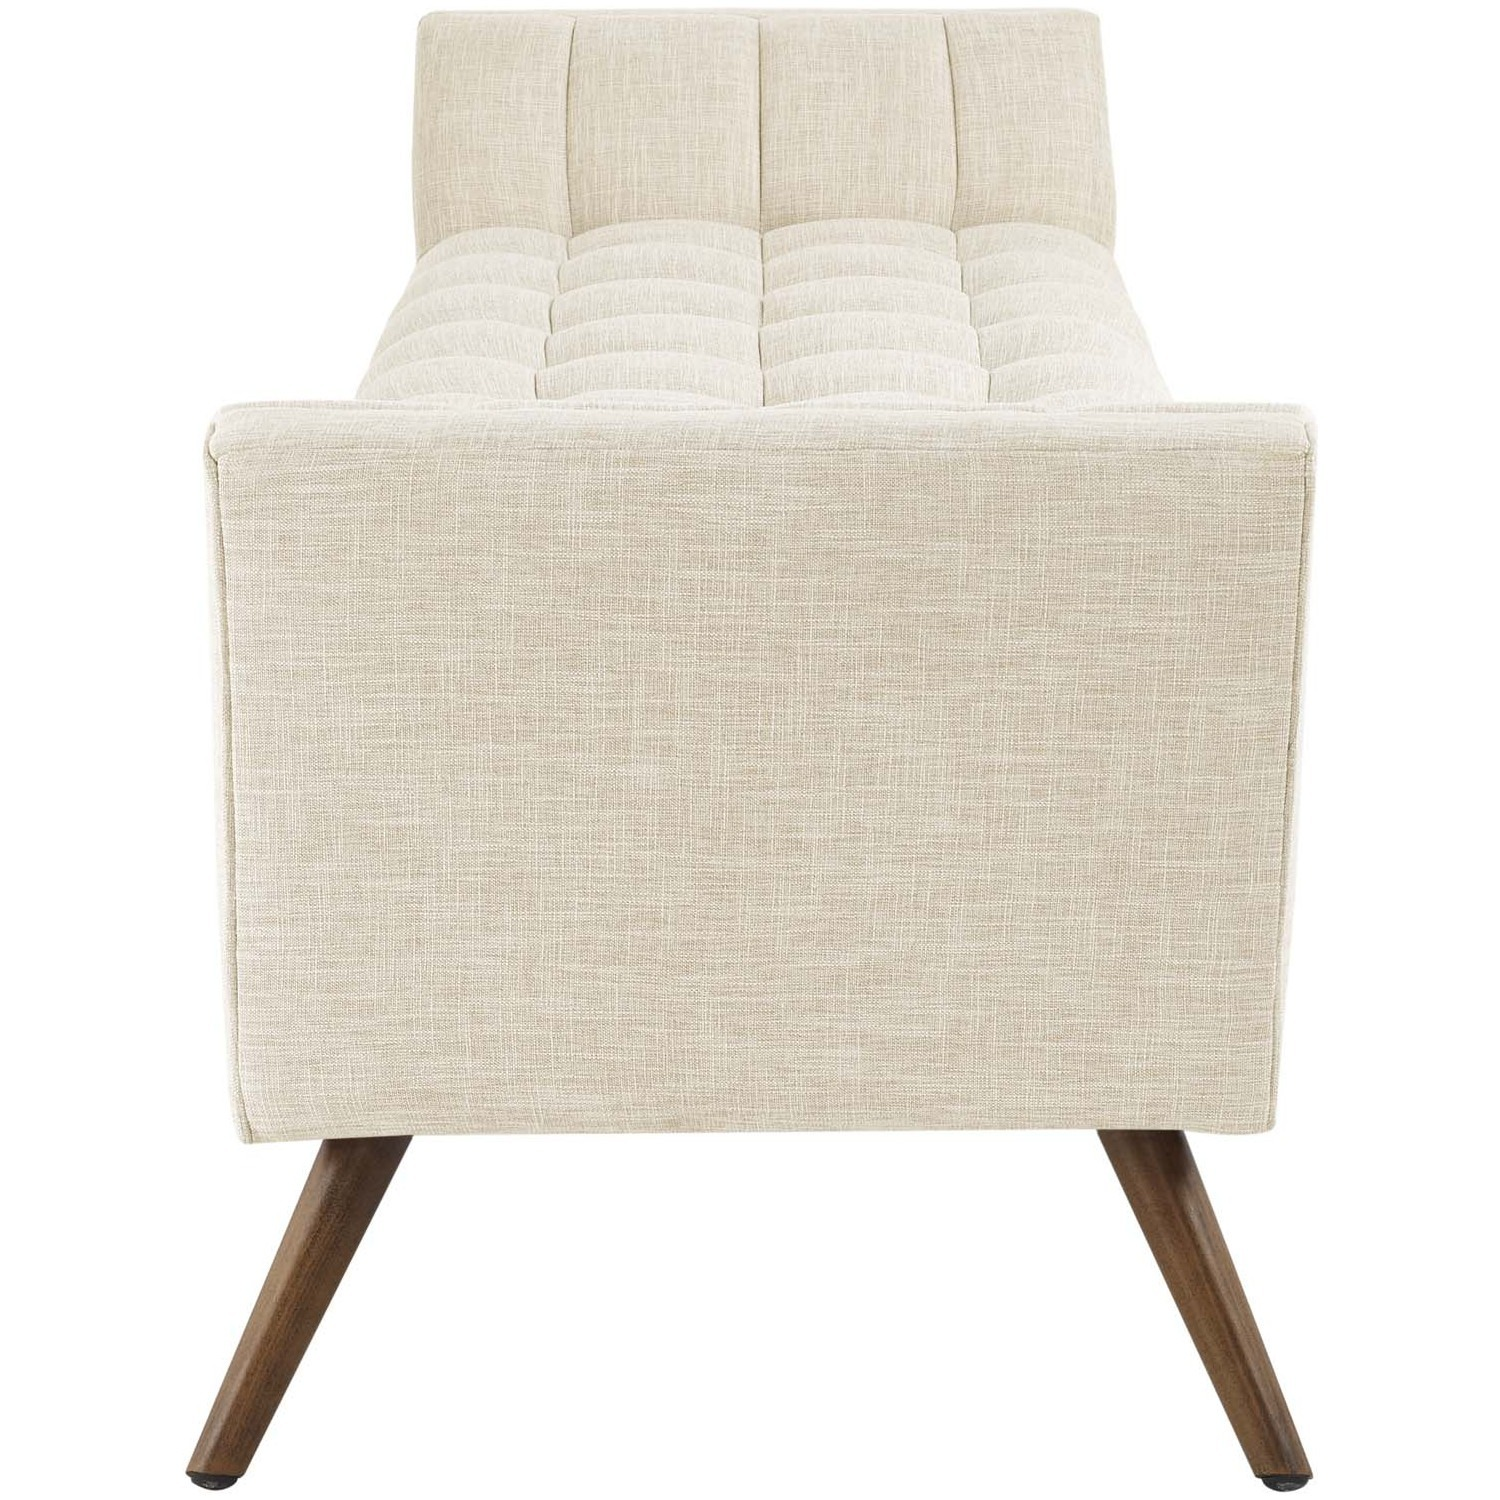 Bench In Beige Fabric Upholstery W/ Wood Legs - image-3